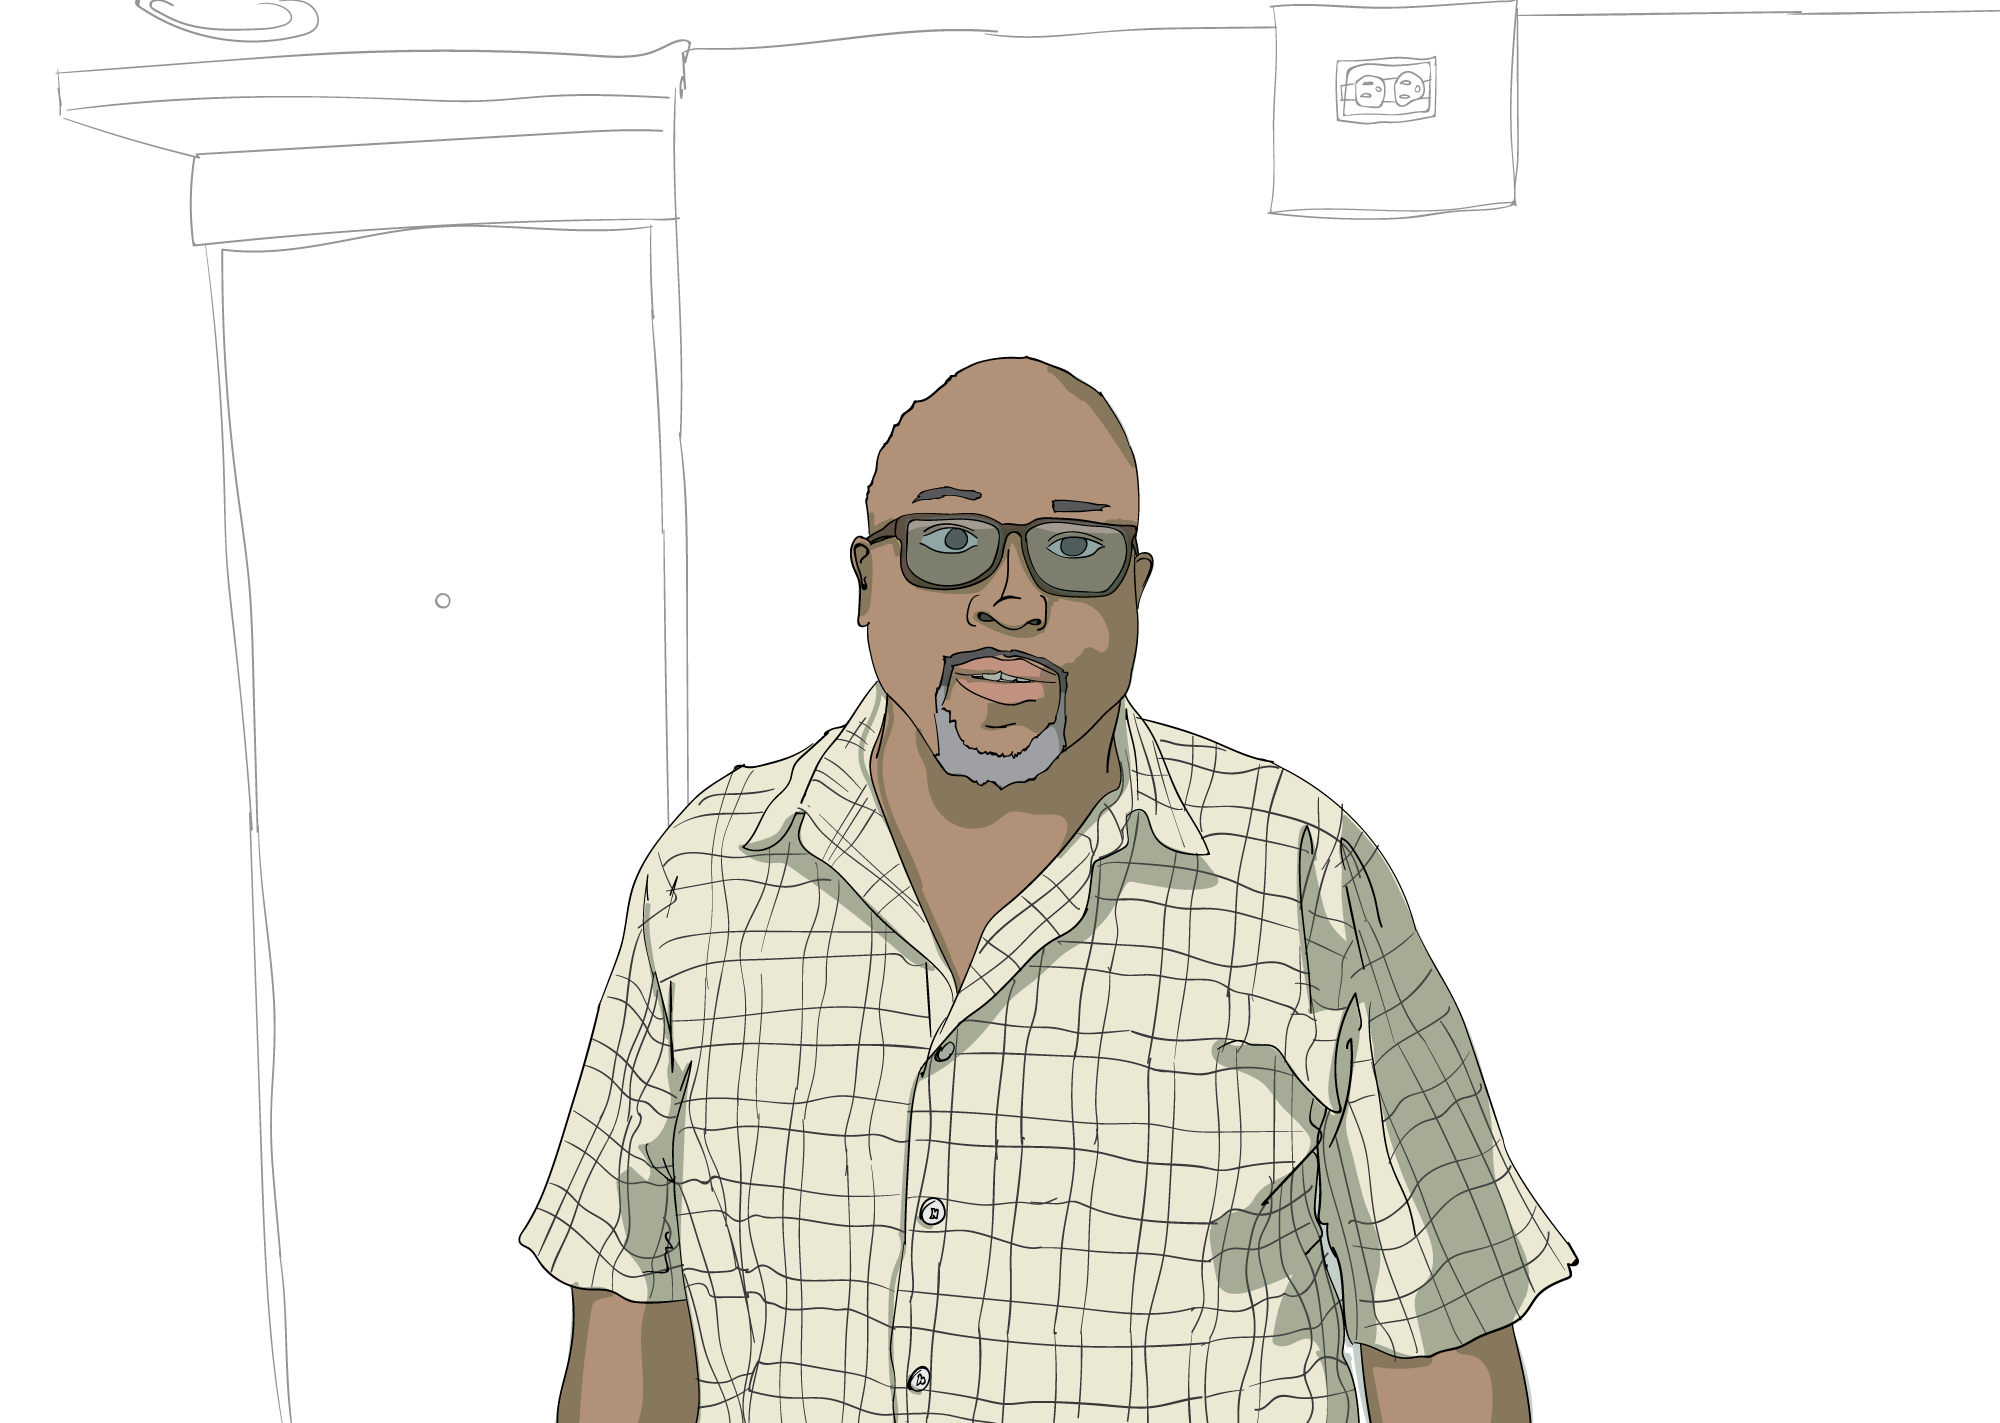 Darryl Townson, illustration by Daniel Rowell/Chicagoist